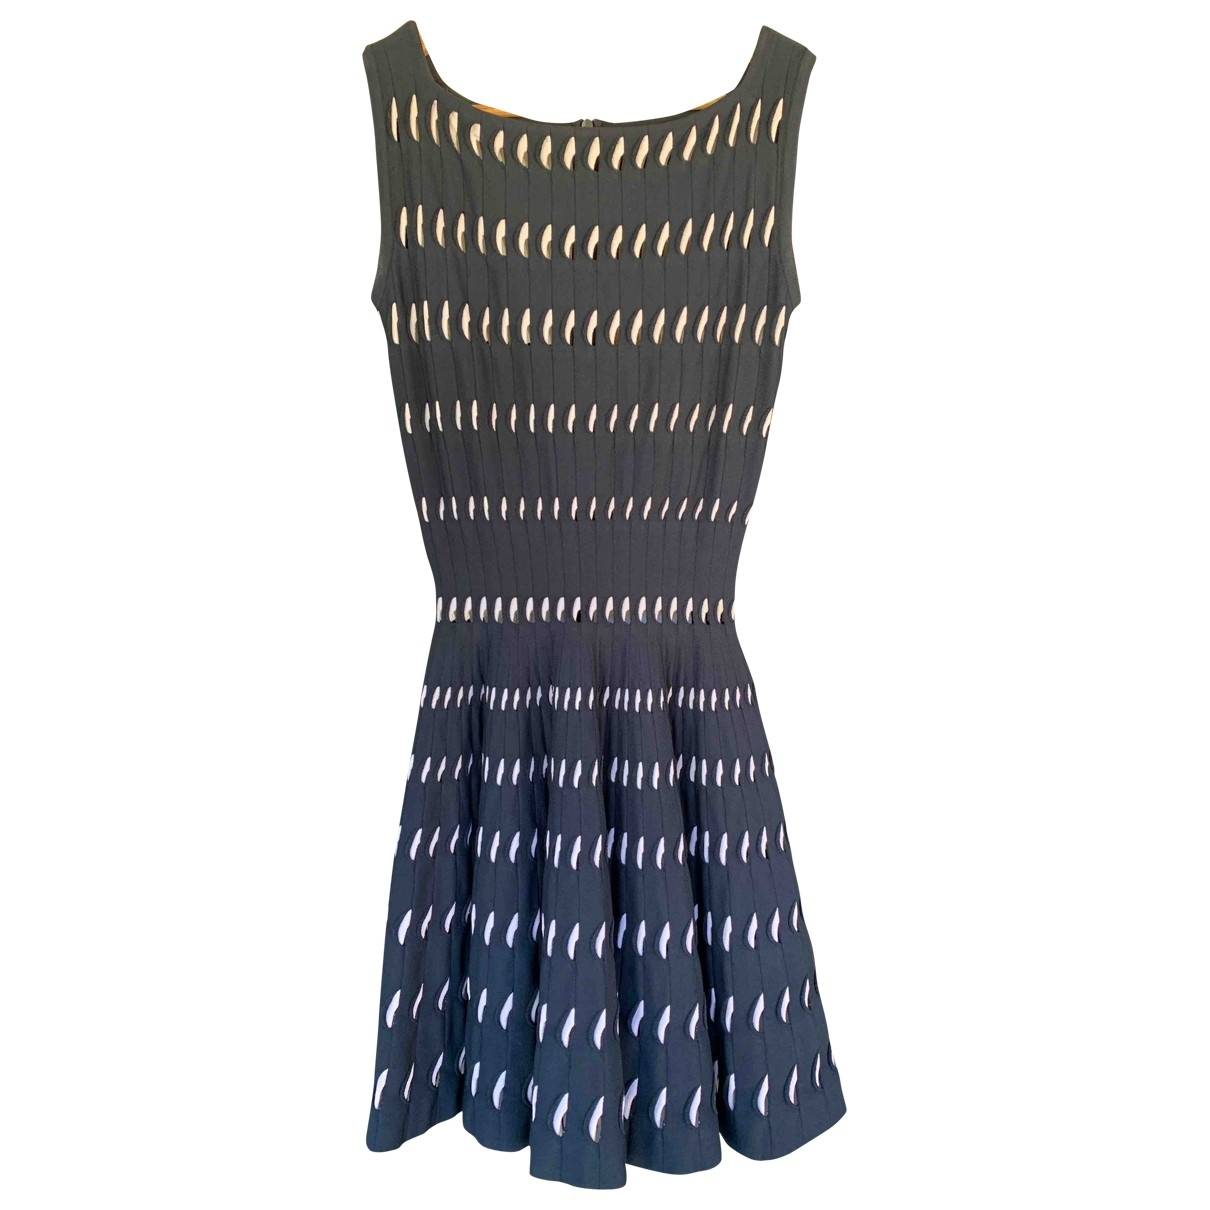 Alaïa \N Blue dress for Women 36 FR